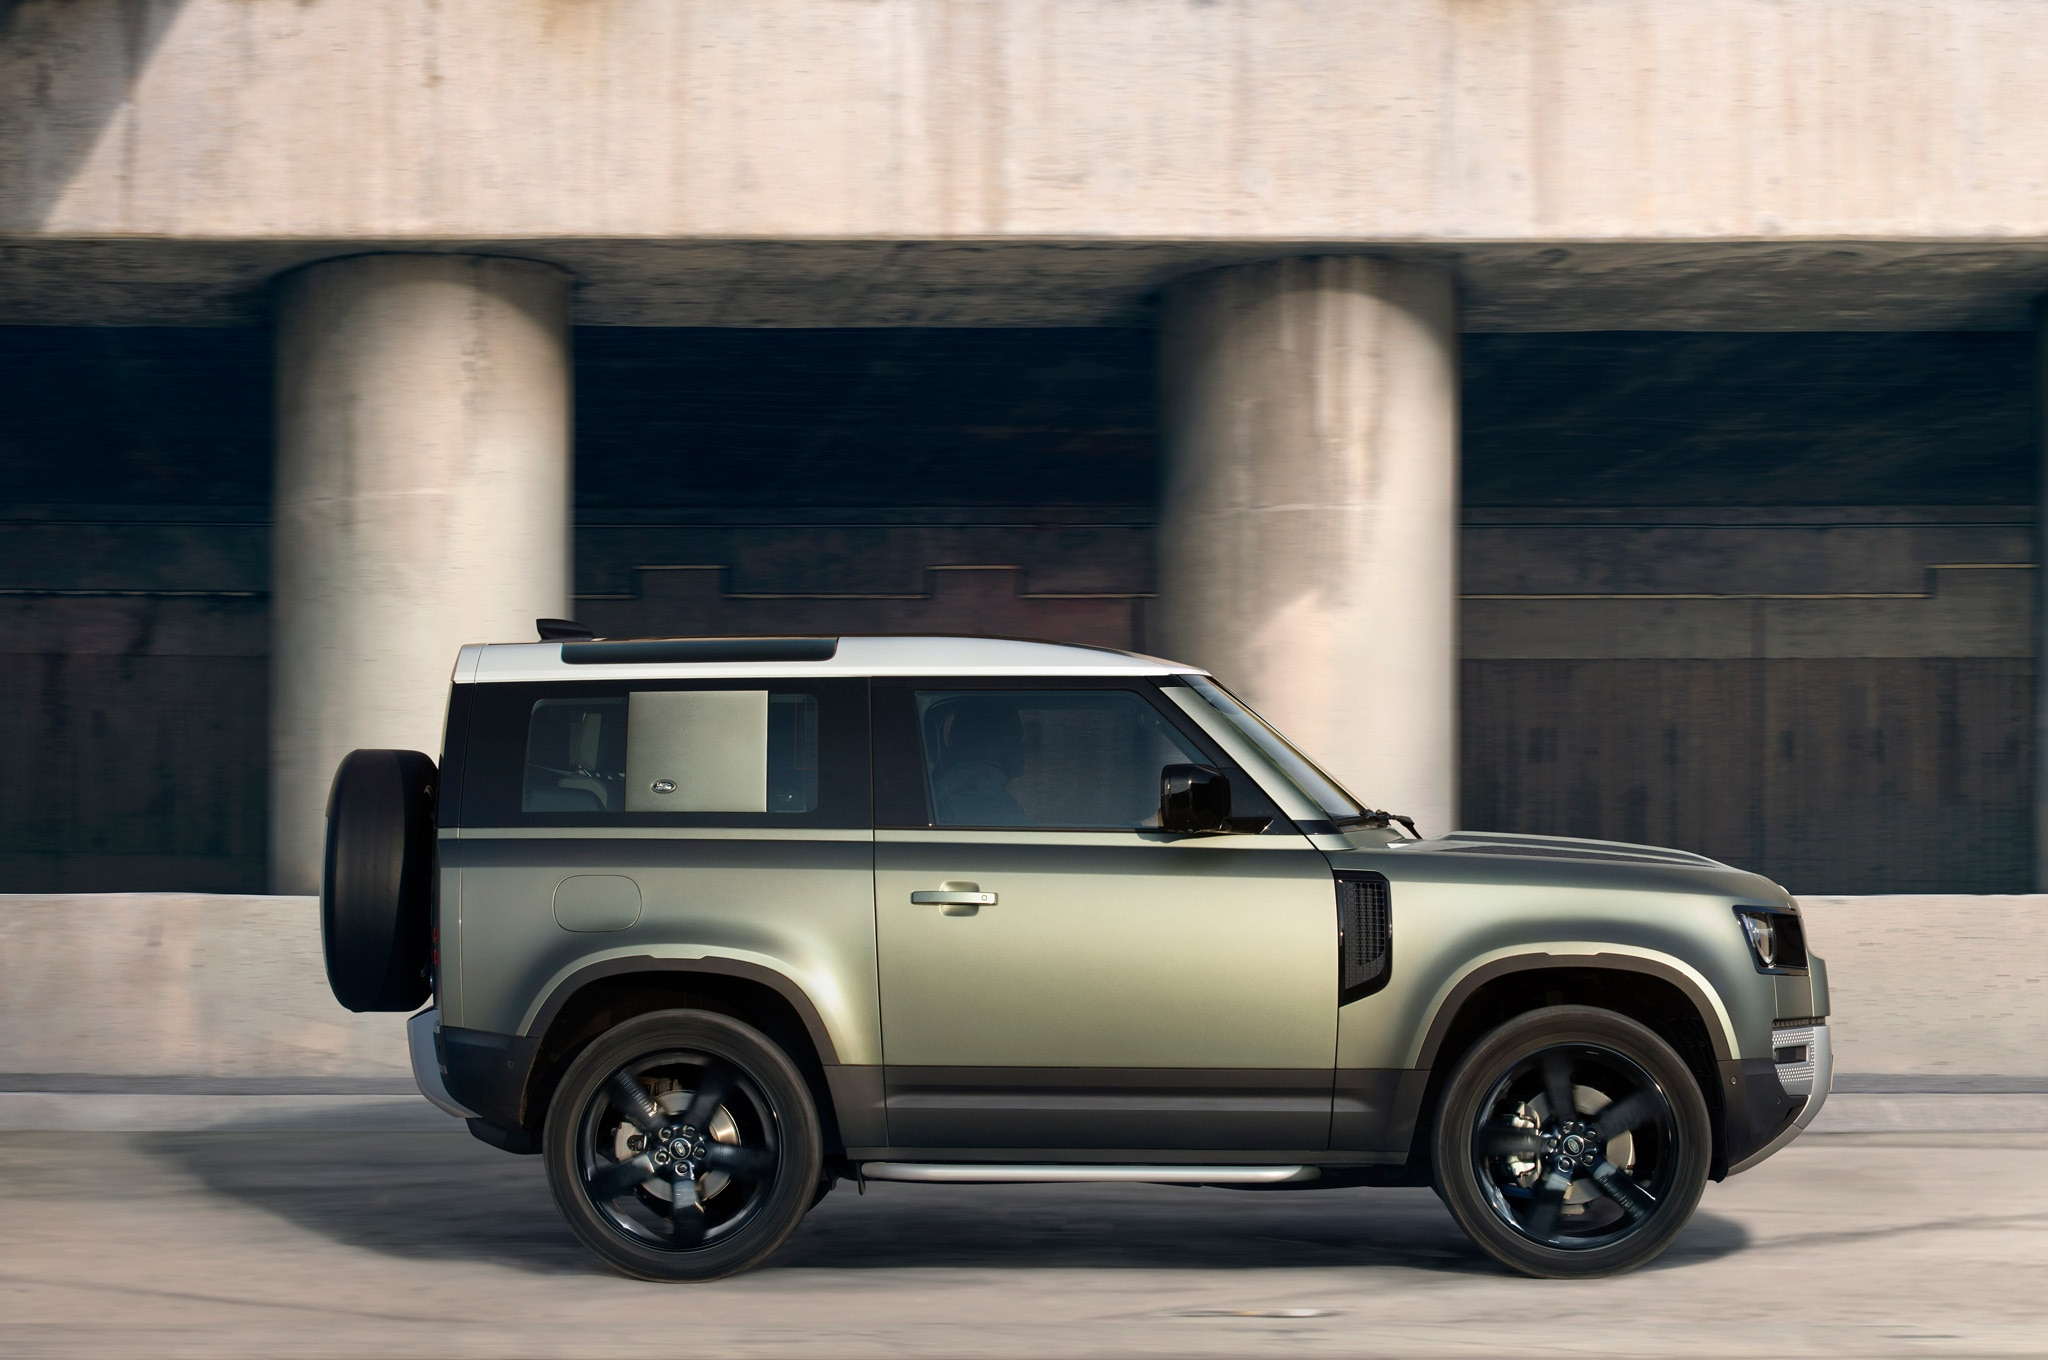 2020 land rover defender 90 exterior side profile 03